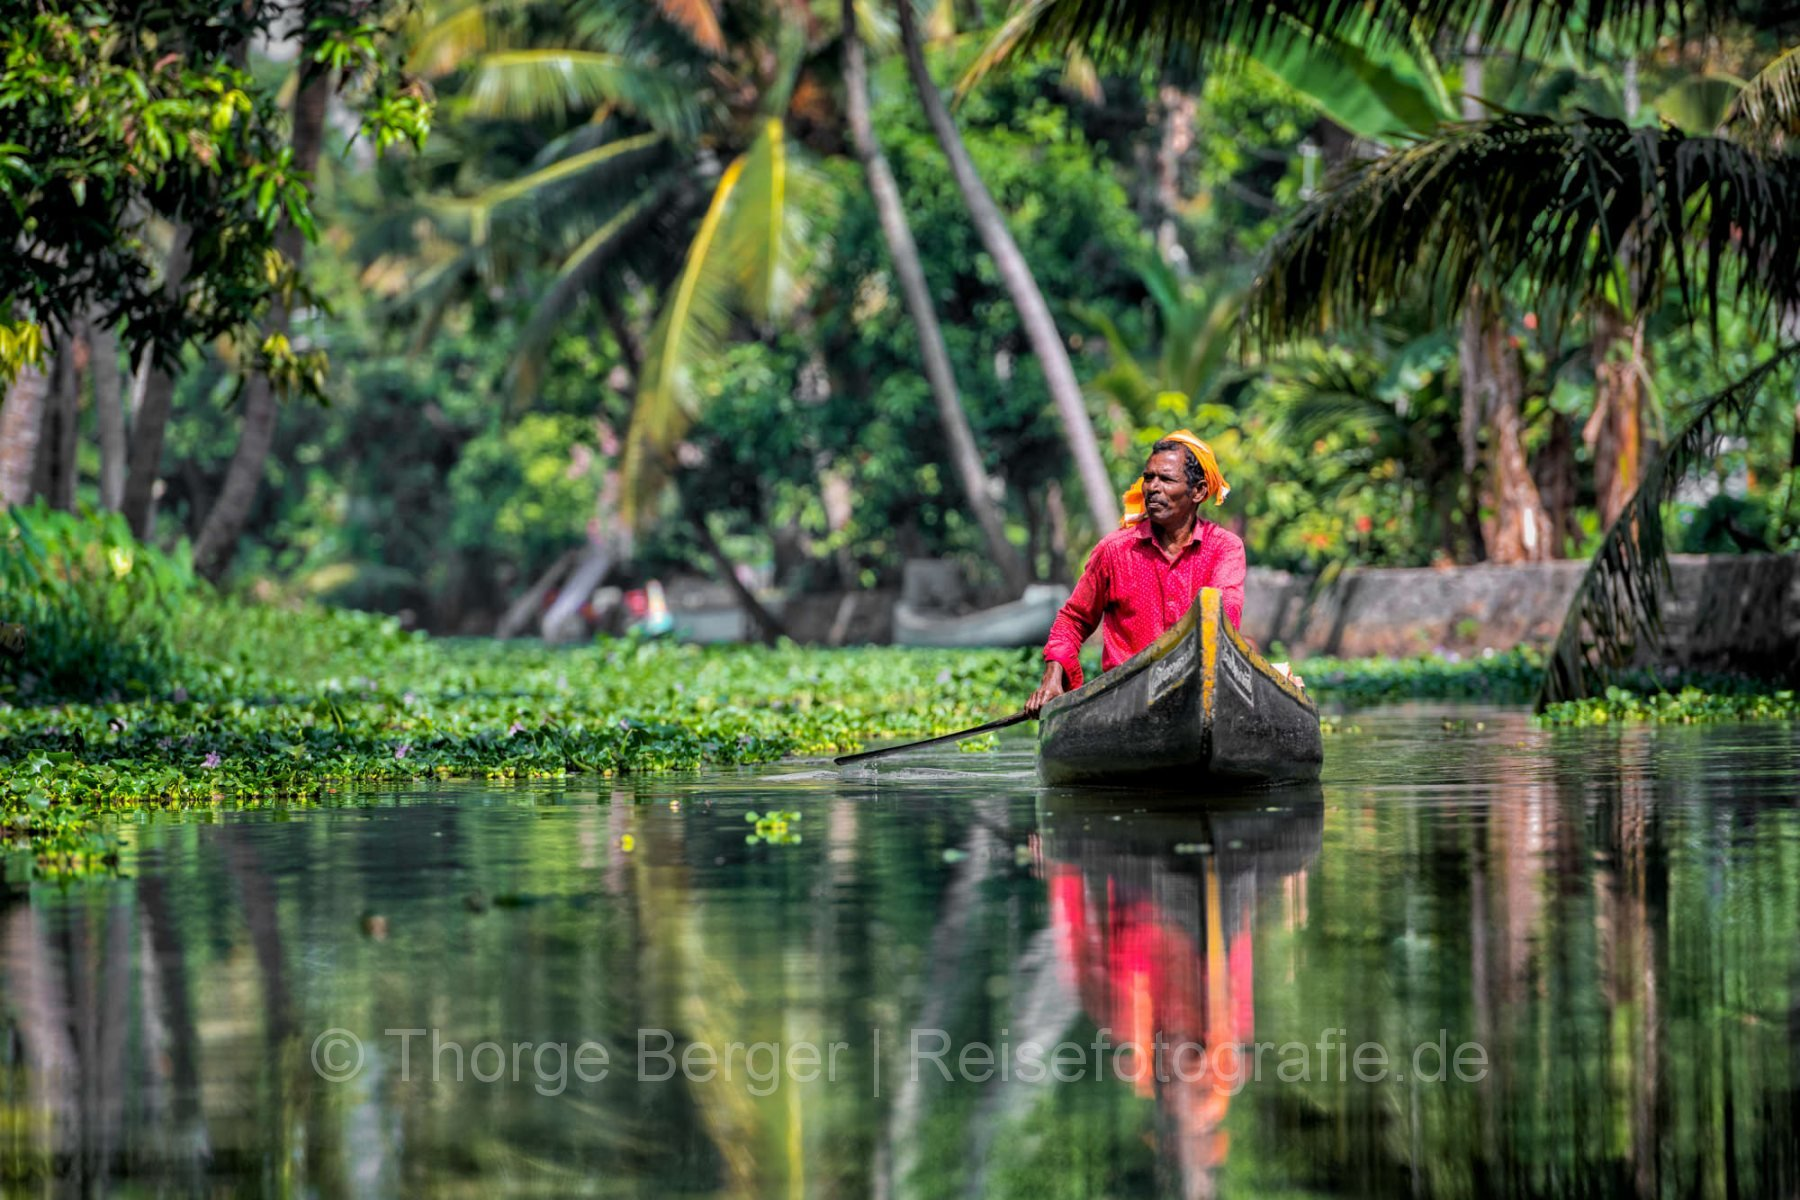 IN the backwaters of Kerala